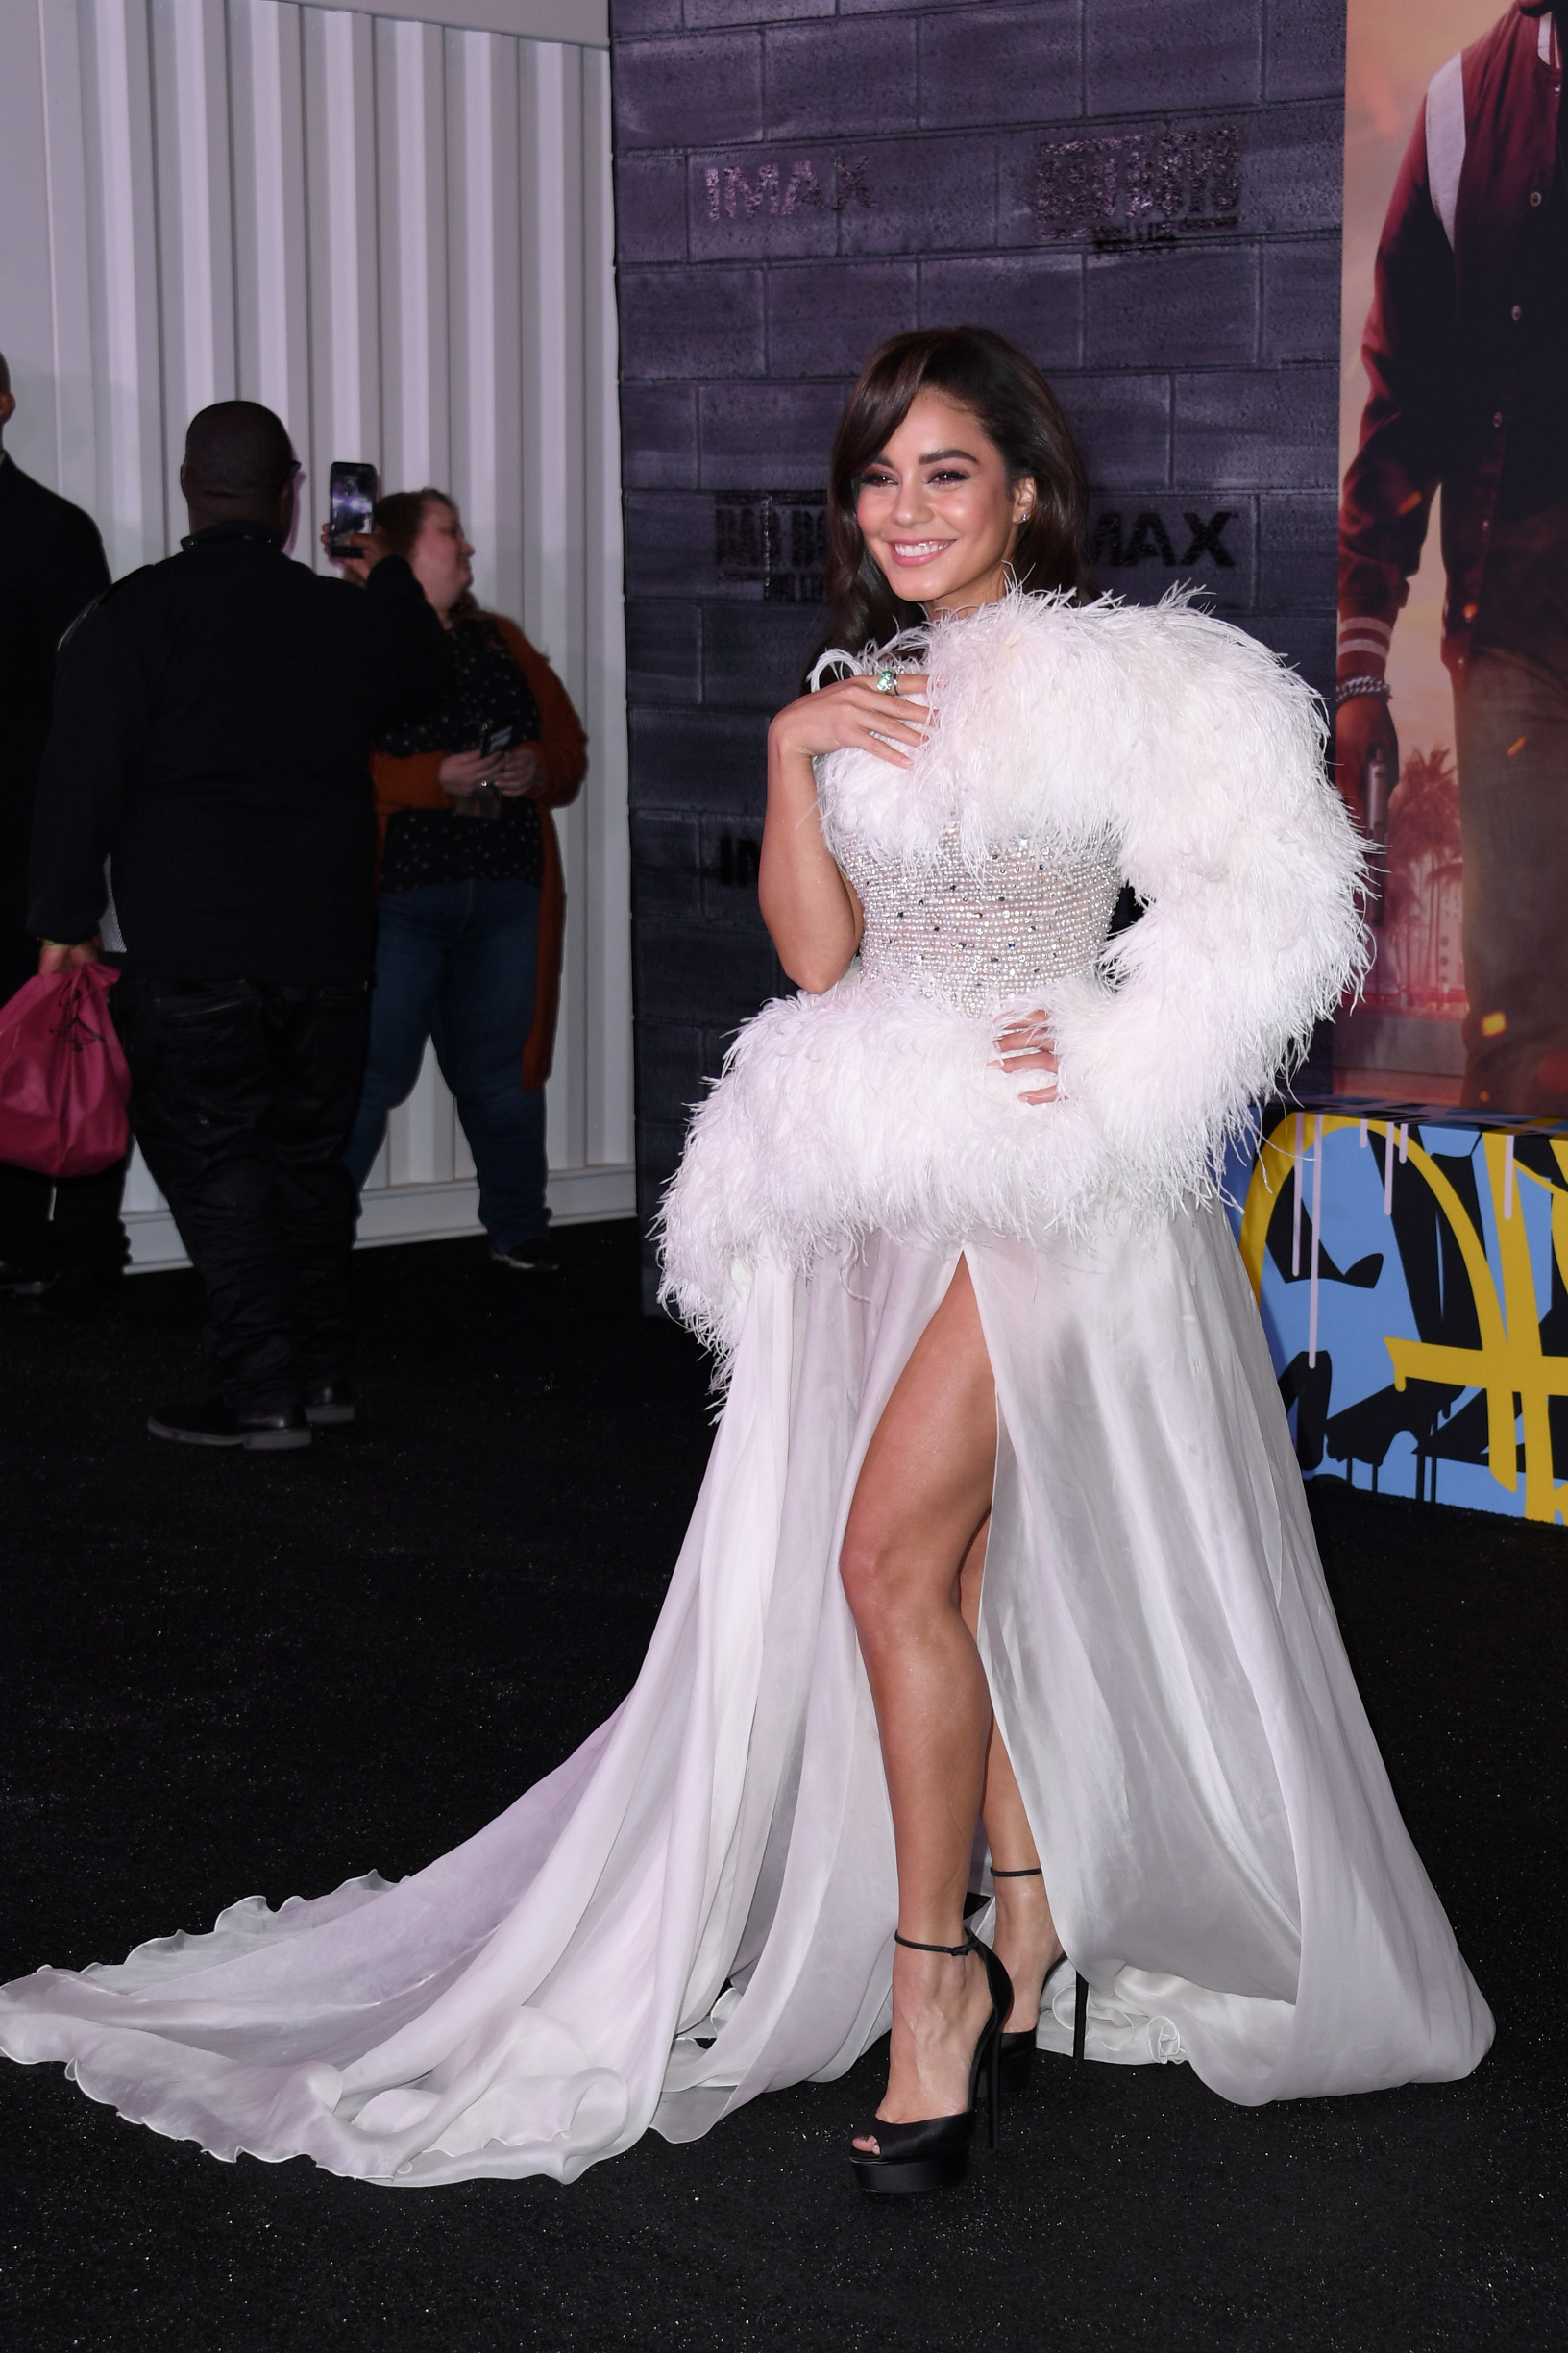 HOLLYWOOD, CALIFORNIA - JANUARY 14: Vanessa Hudgens attends the premiere of Columbia Pictures'